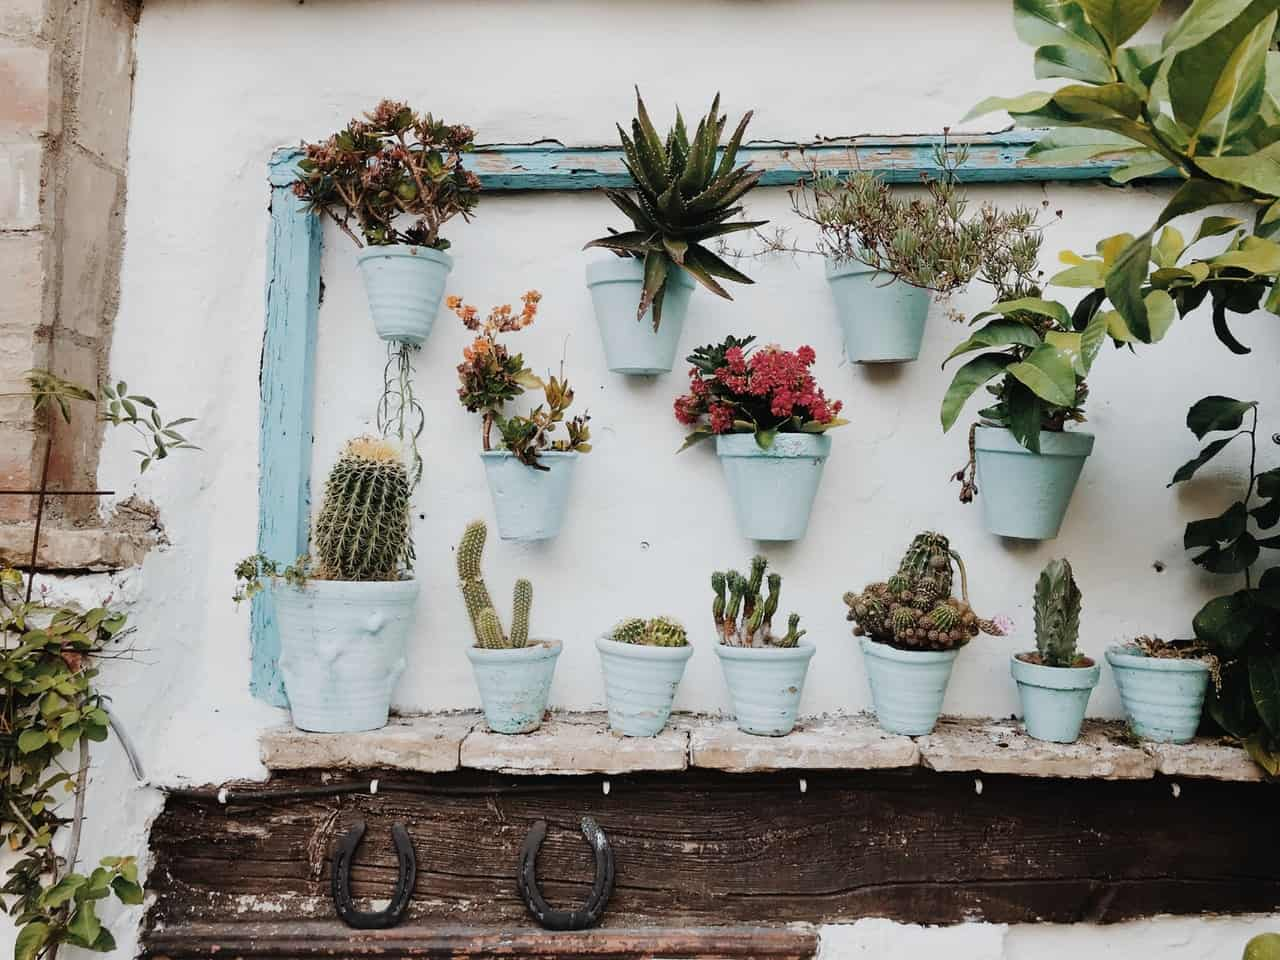 A collage of small garden boxes and shelves #smallGarden #SmallGardenDesign #smallyardlandscaping #gardenIdeas #backyardLandscaping #backyardLandscapingIdeas #landscaping